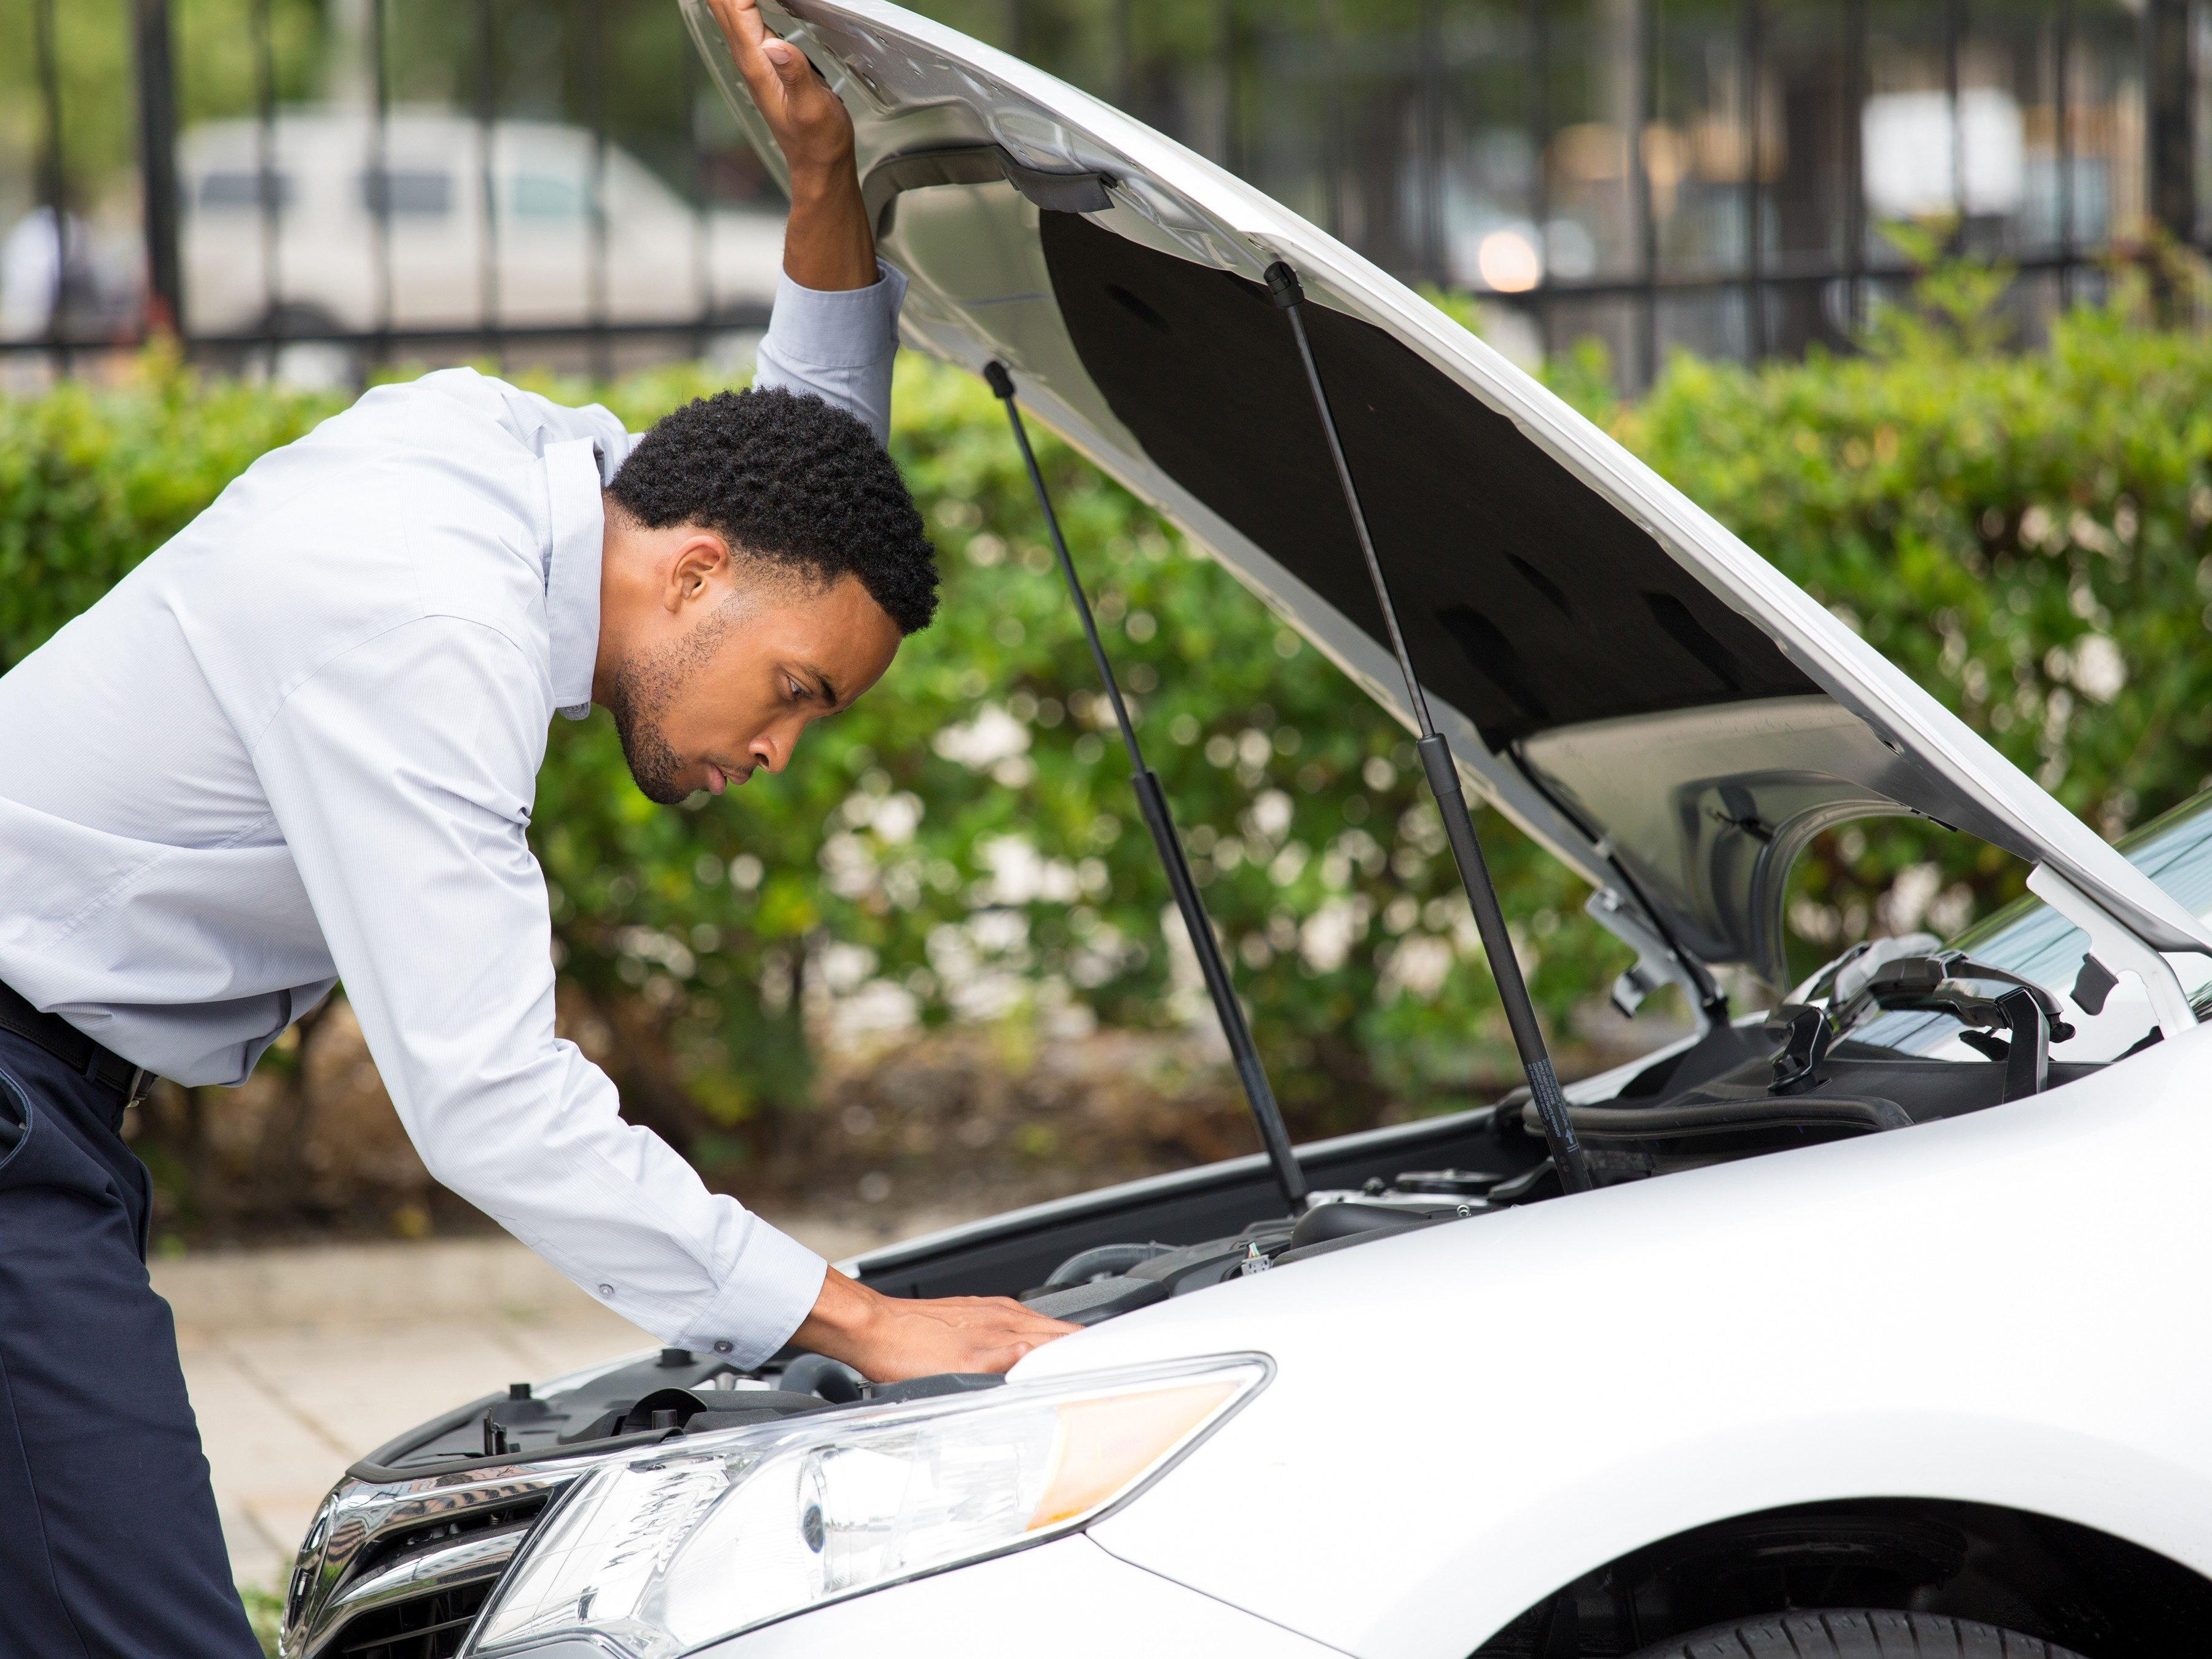 HOW TO REPLACE THE GAS LIFTS ON YOUR CAR'S HOOD, TRUNK OR REAR HATCH